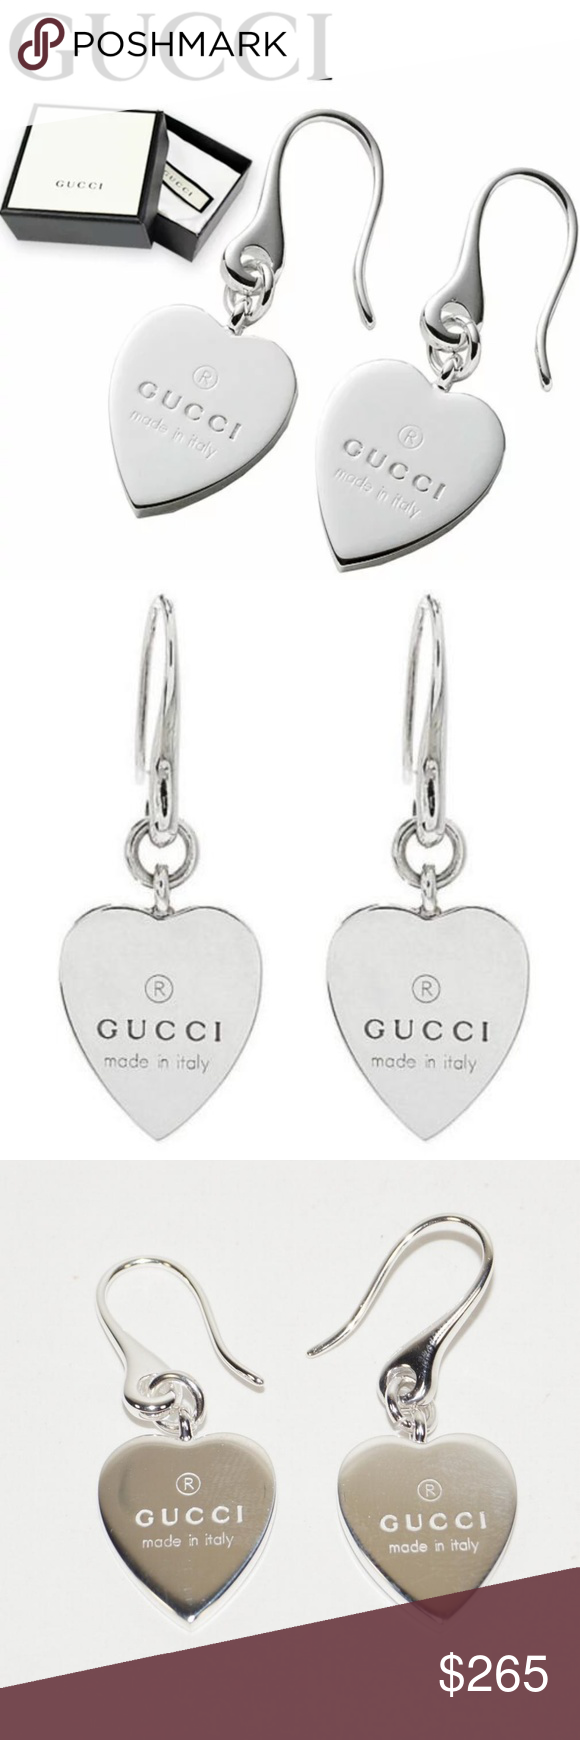 5fbd9328f GUCCI TRADEMARK HEART 925 ST SILVER DROP EARRINGS BRAND NEW Authentic GUCCI  DROP EARRINGS - BEAUTIFUL